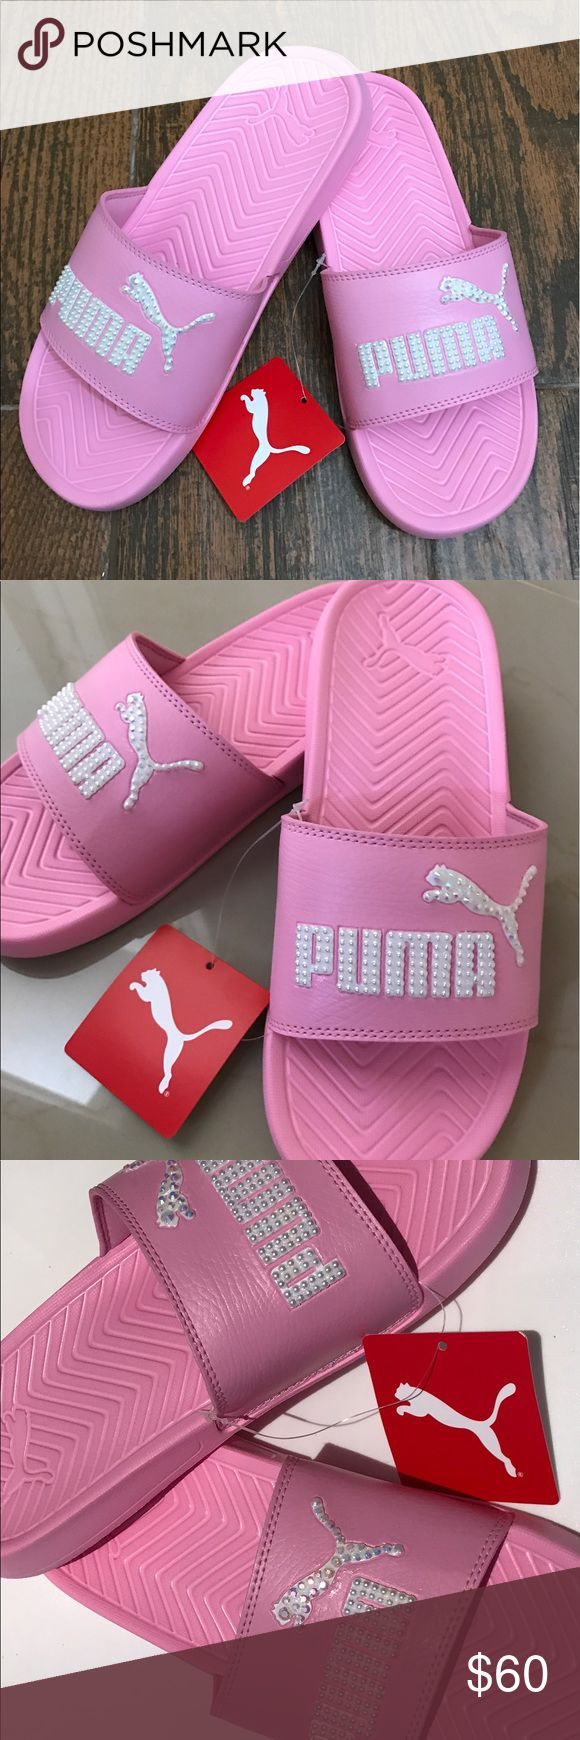 Bling Puma Slides Pretty pink Puma Slides blinged with Faux pearls and resin rhinestones. Each stone laid by hand with love. Use only the best materials Puma Shoes Sandals